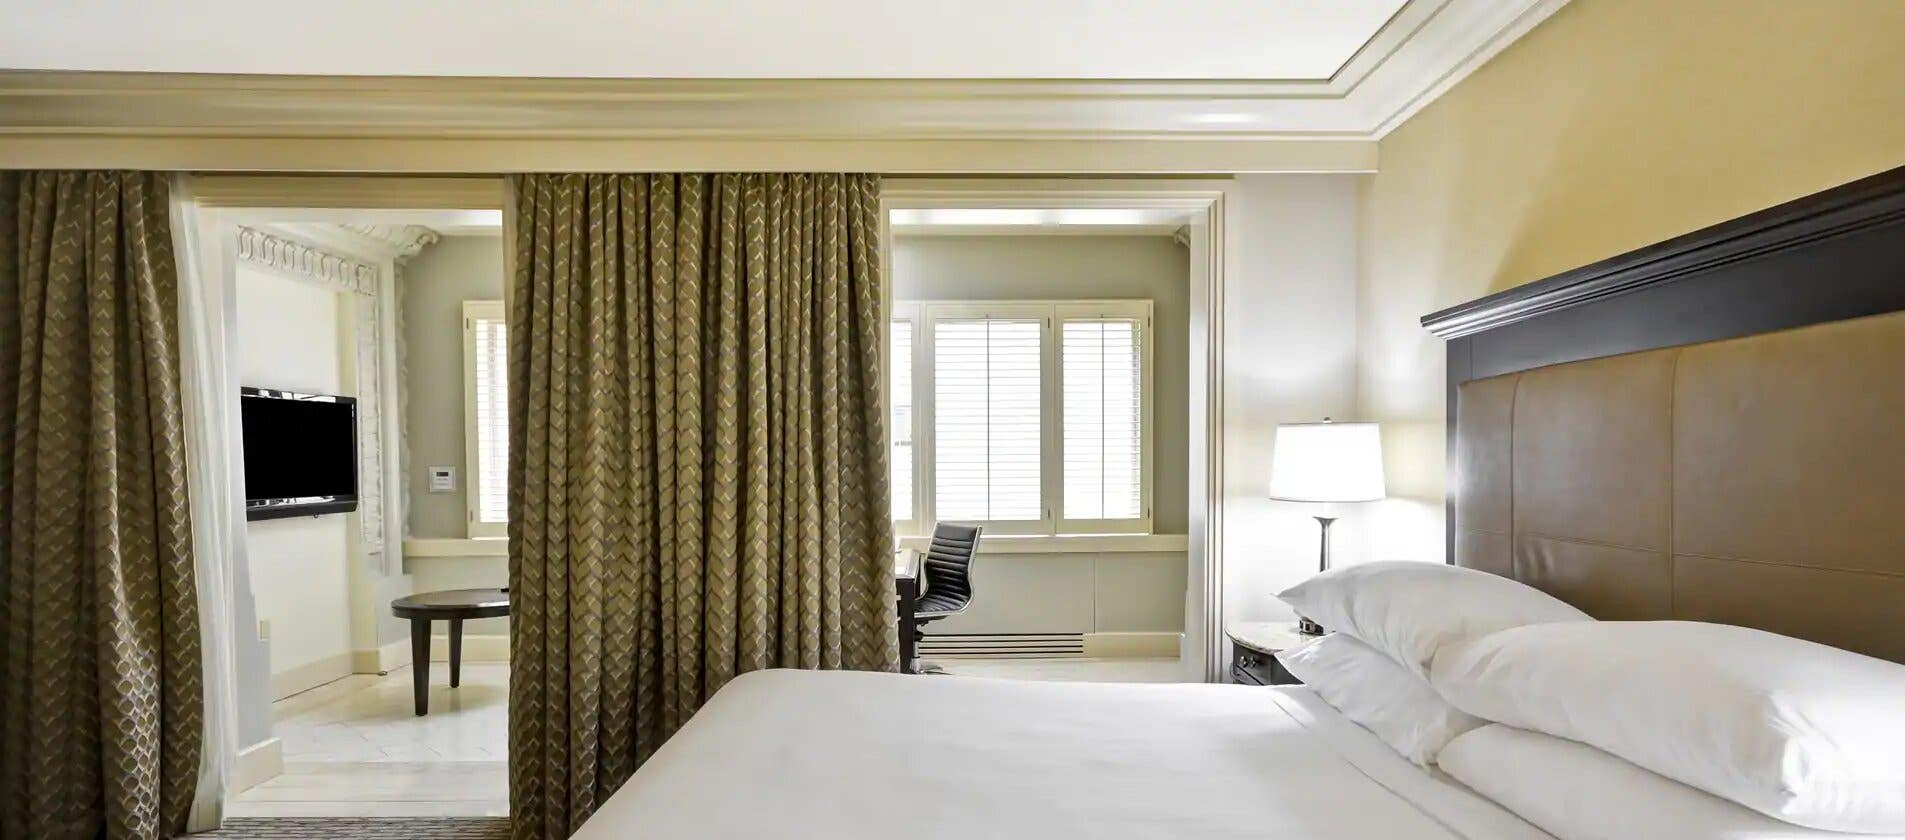 King Bed Junior Suite at Hilton Checkers Los Angeles